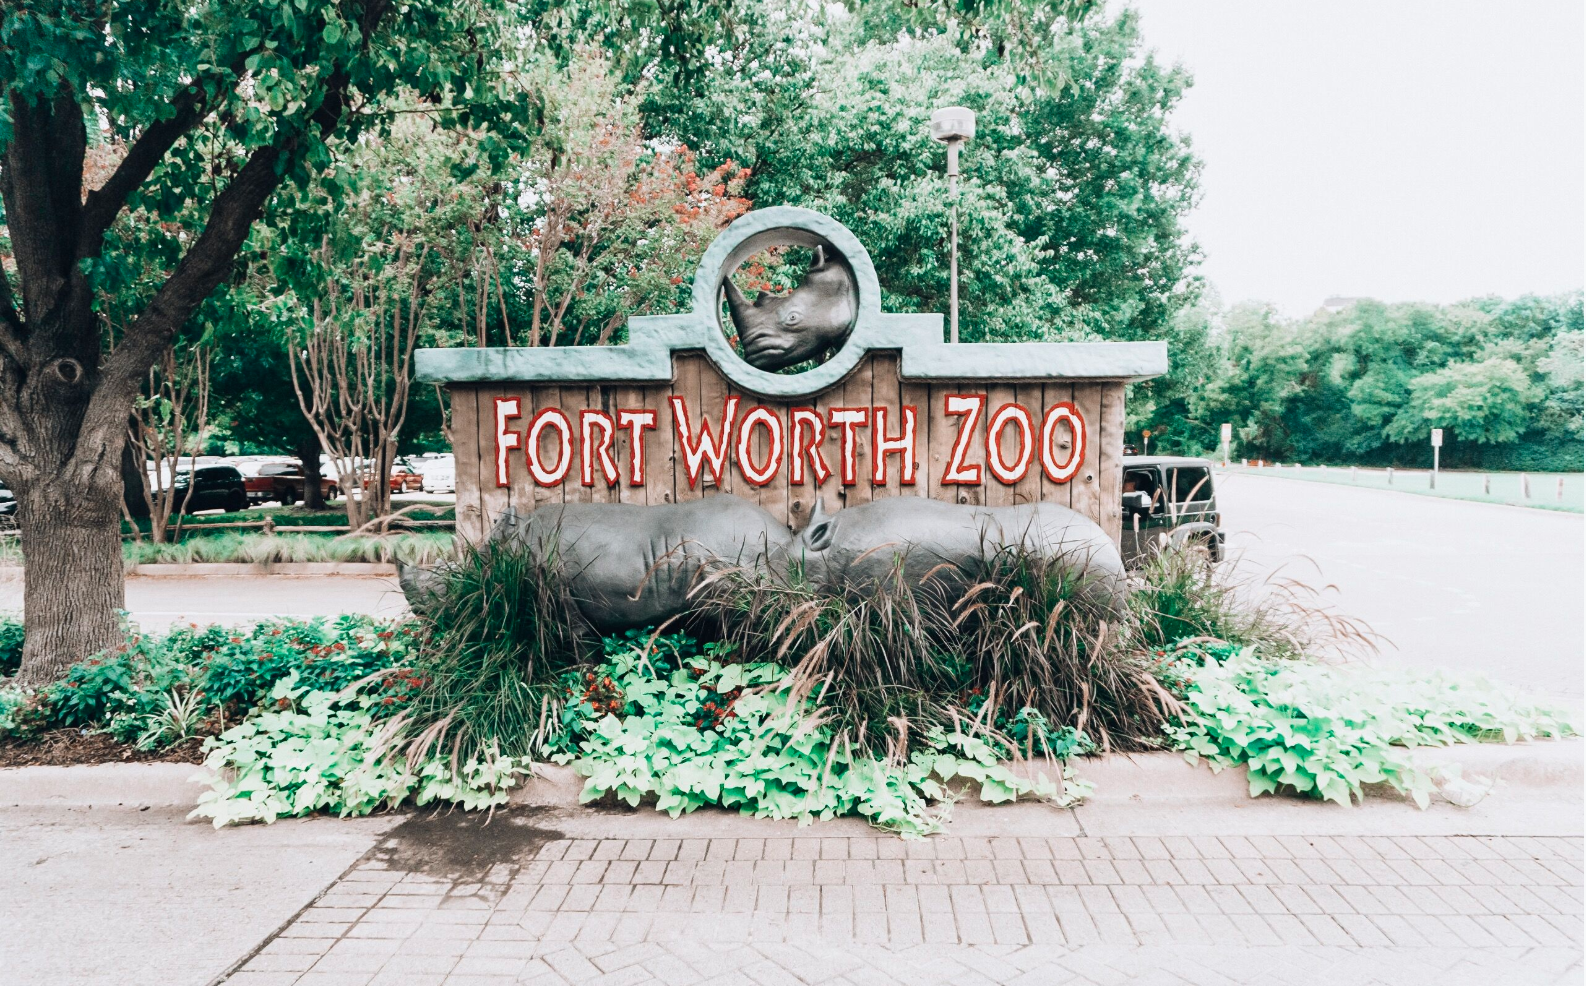 fort worth zoo sign.png